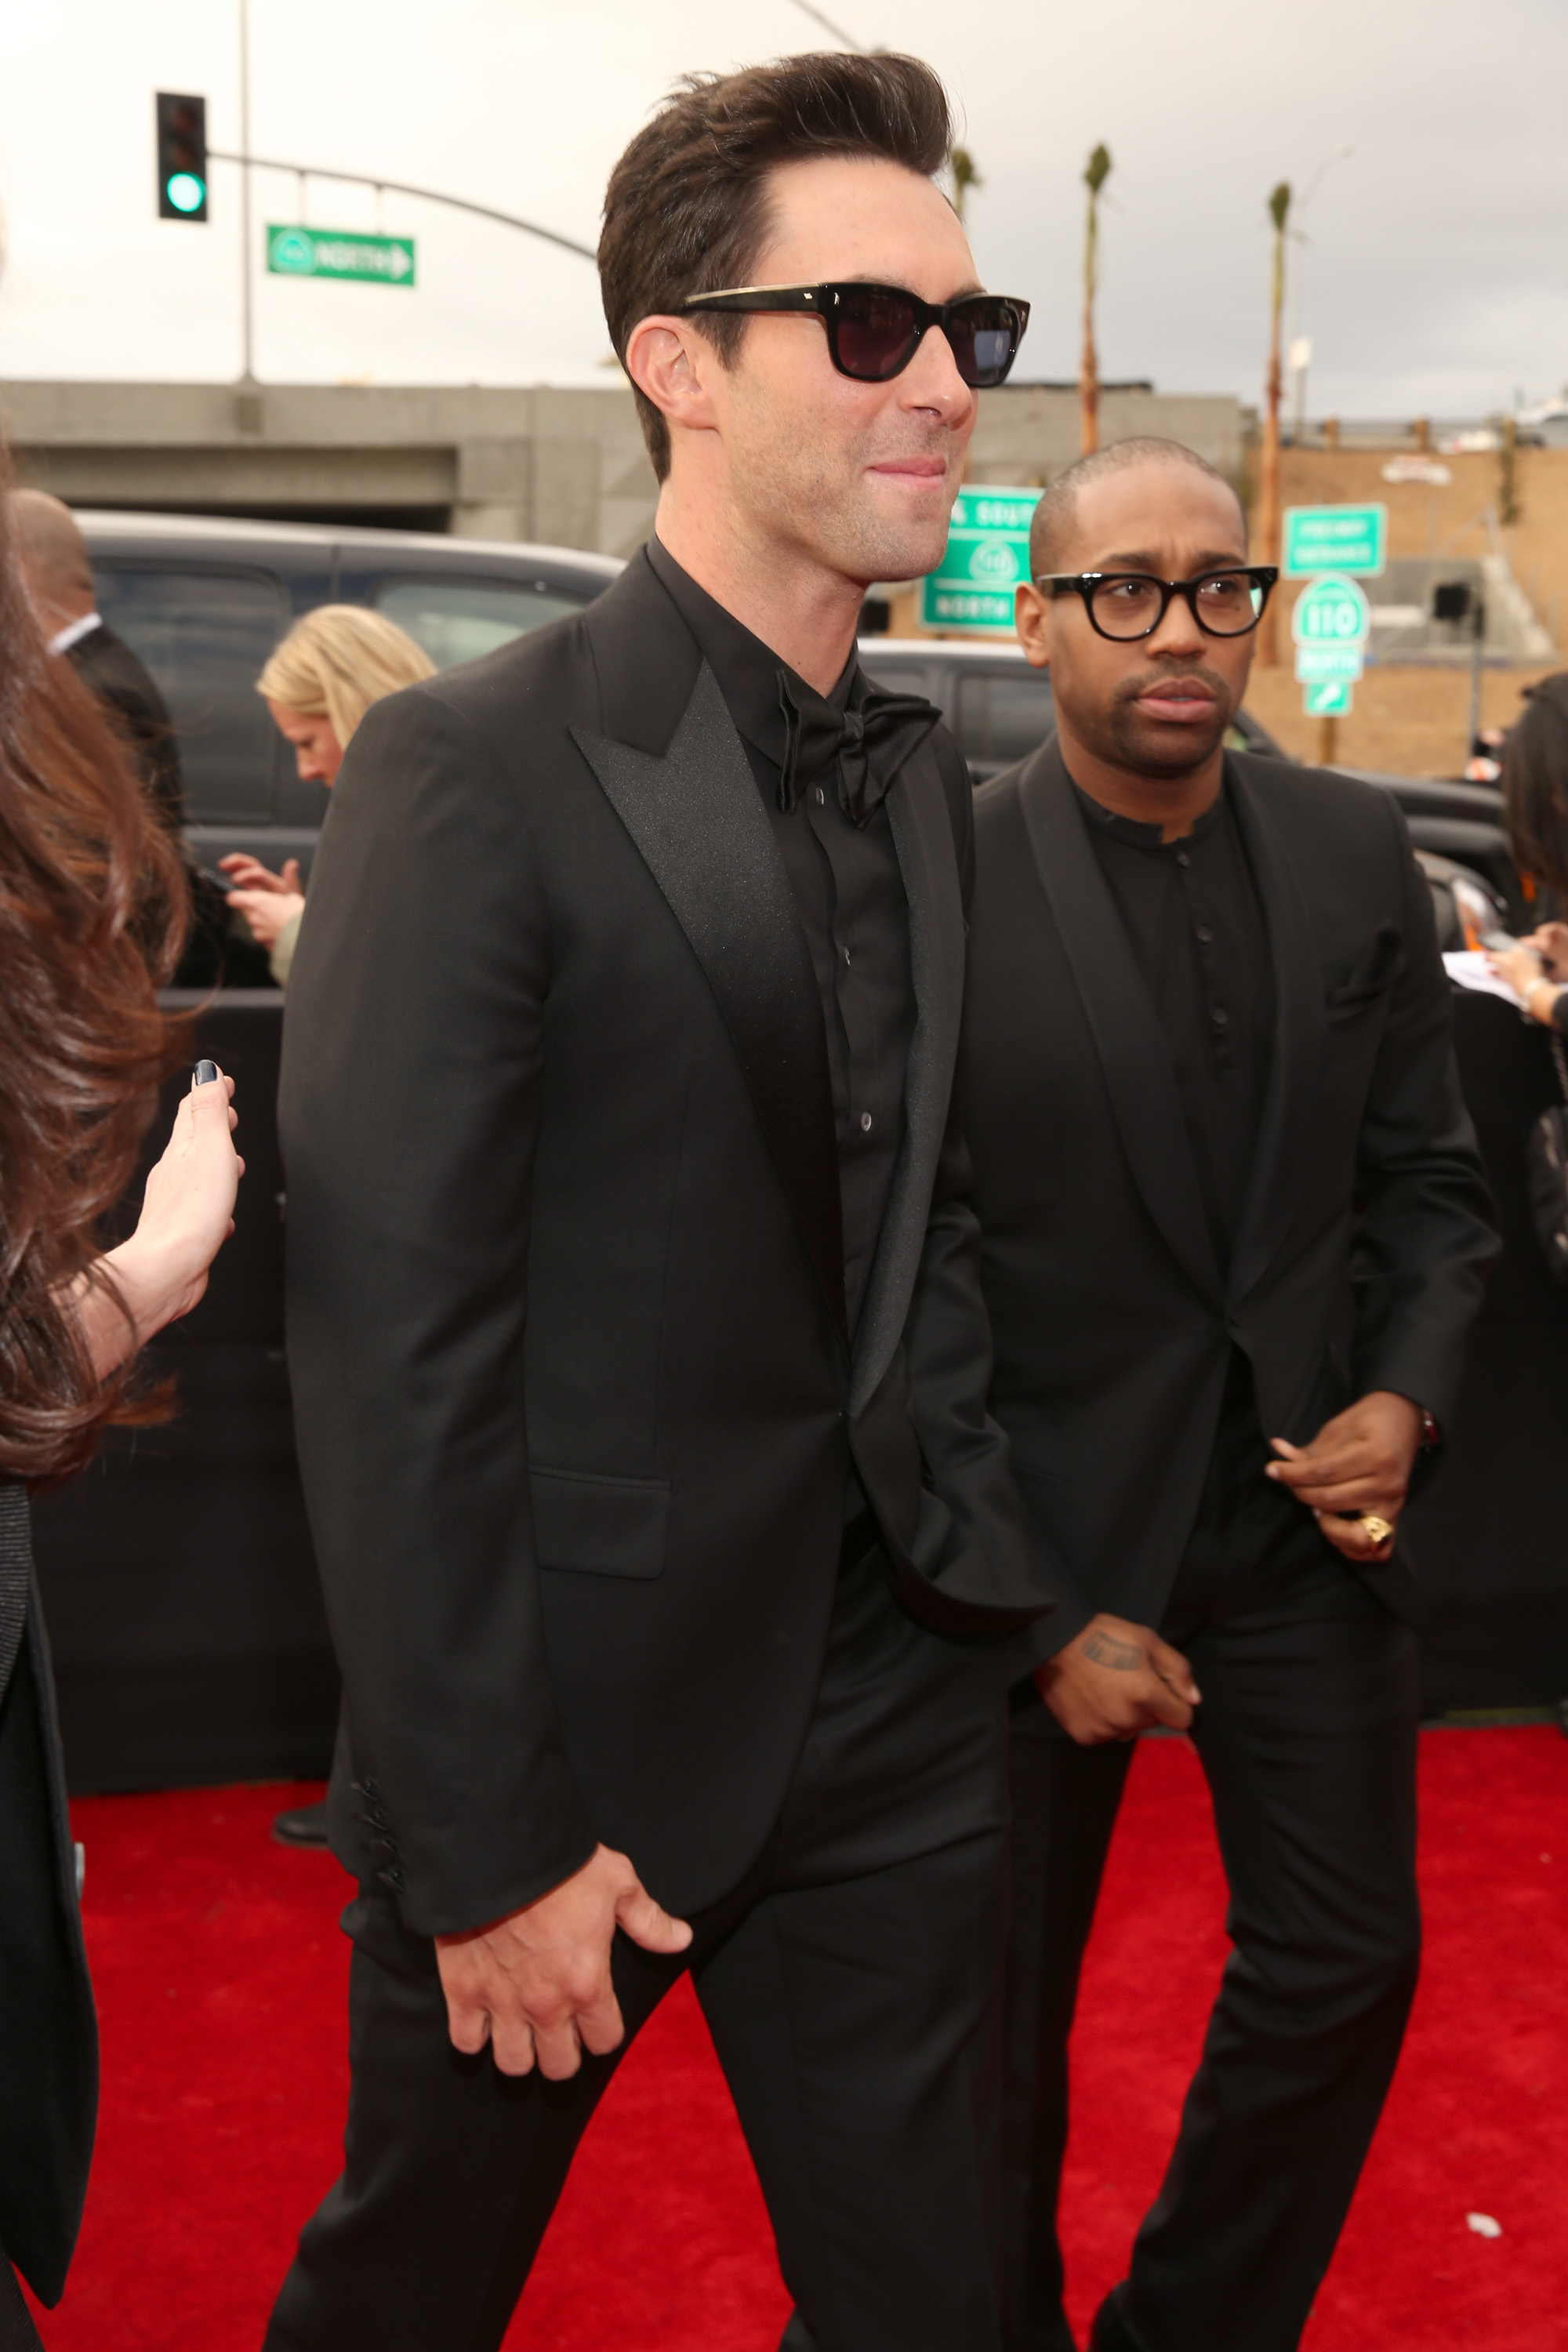 Adam Levine arrived at the Grammy Awards in an all-black suit.